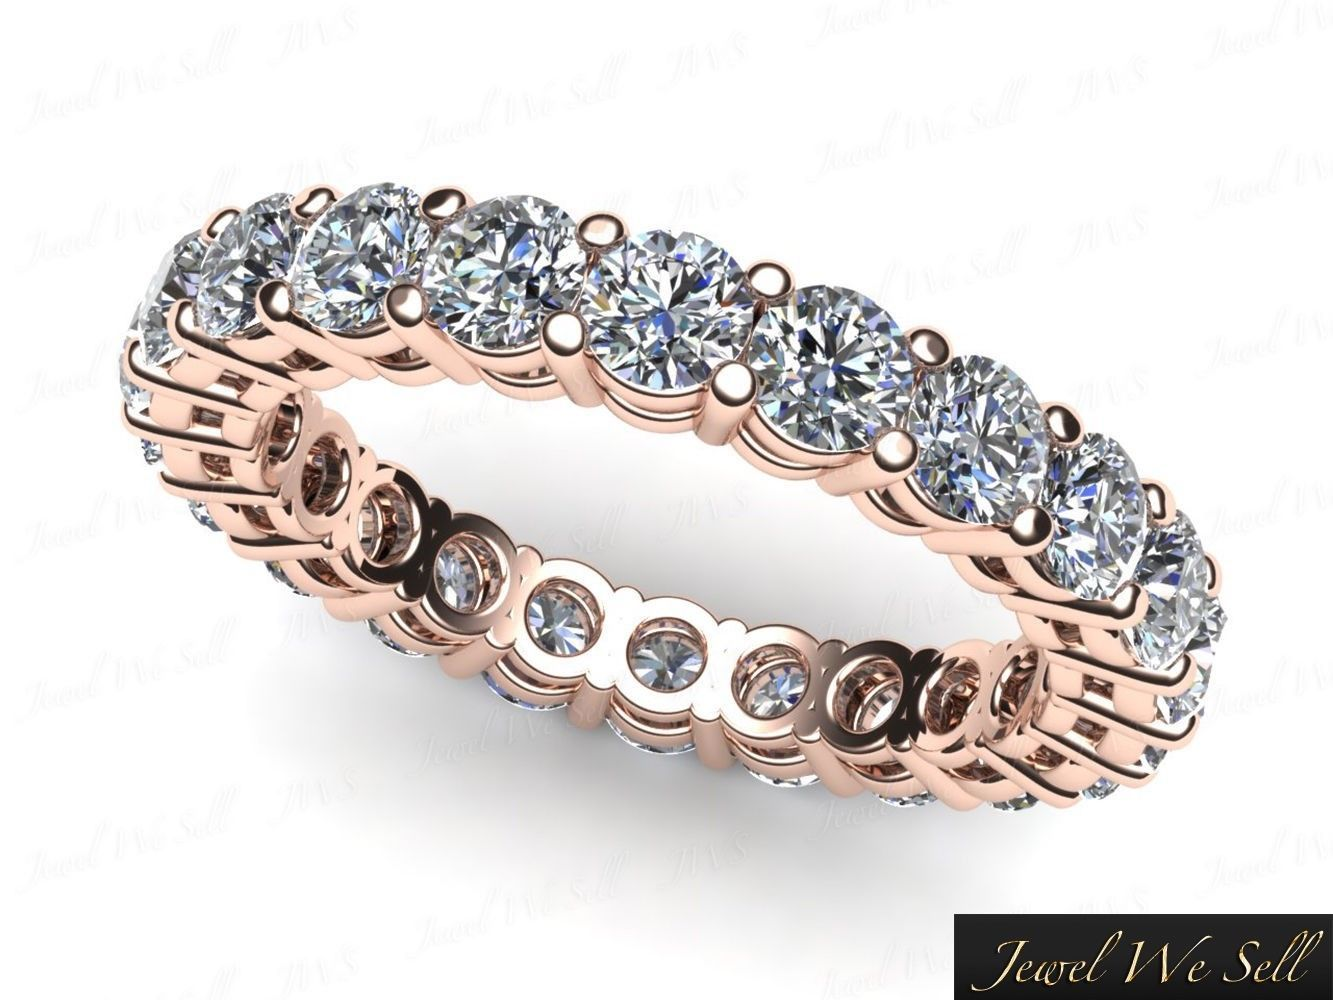 Ct round diamond shared prong gallery eternity band ring k